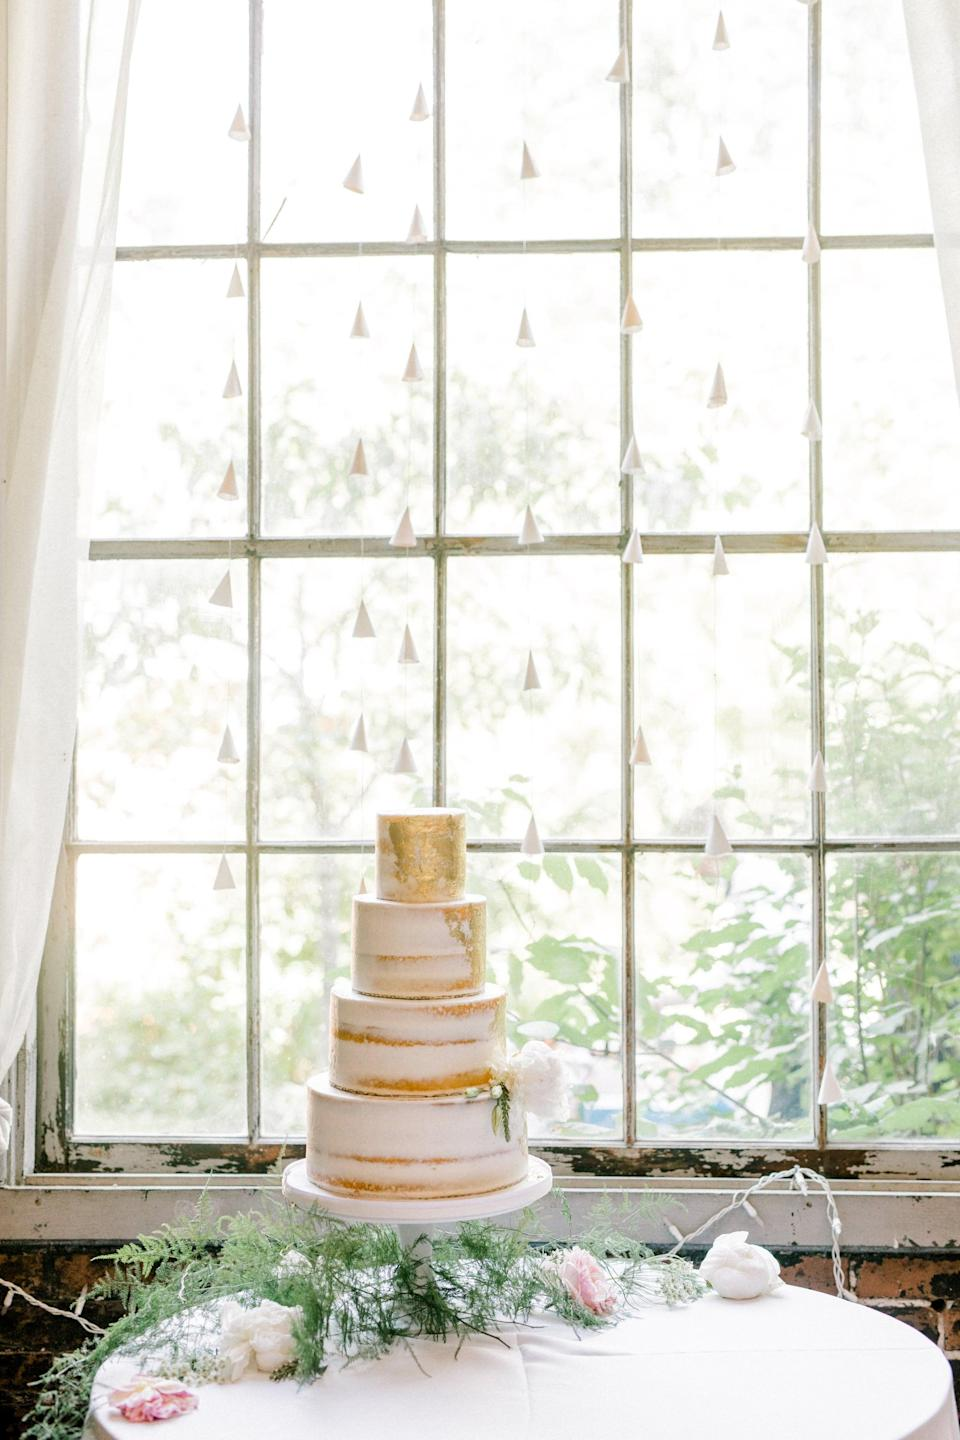 """<p>Make every area of your venue worthy of a photo op when you create a <a class=""""link rapid-noclick-resp"""" href=""""https://www.popsugar.com/latest/DIY"""" rel=""""nofollow noopener"""" target=""""_blank"""" data-ylk=""""slk:DIY"""">DIY</a> backdrop. You can get creative and use little tassels (shown in the photo), faux plant vines, and more to elevate any space. We love how this backdrop highlights the cake and draws attention to it.</p>"""